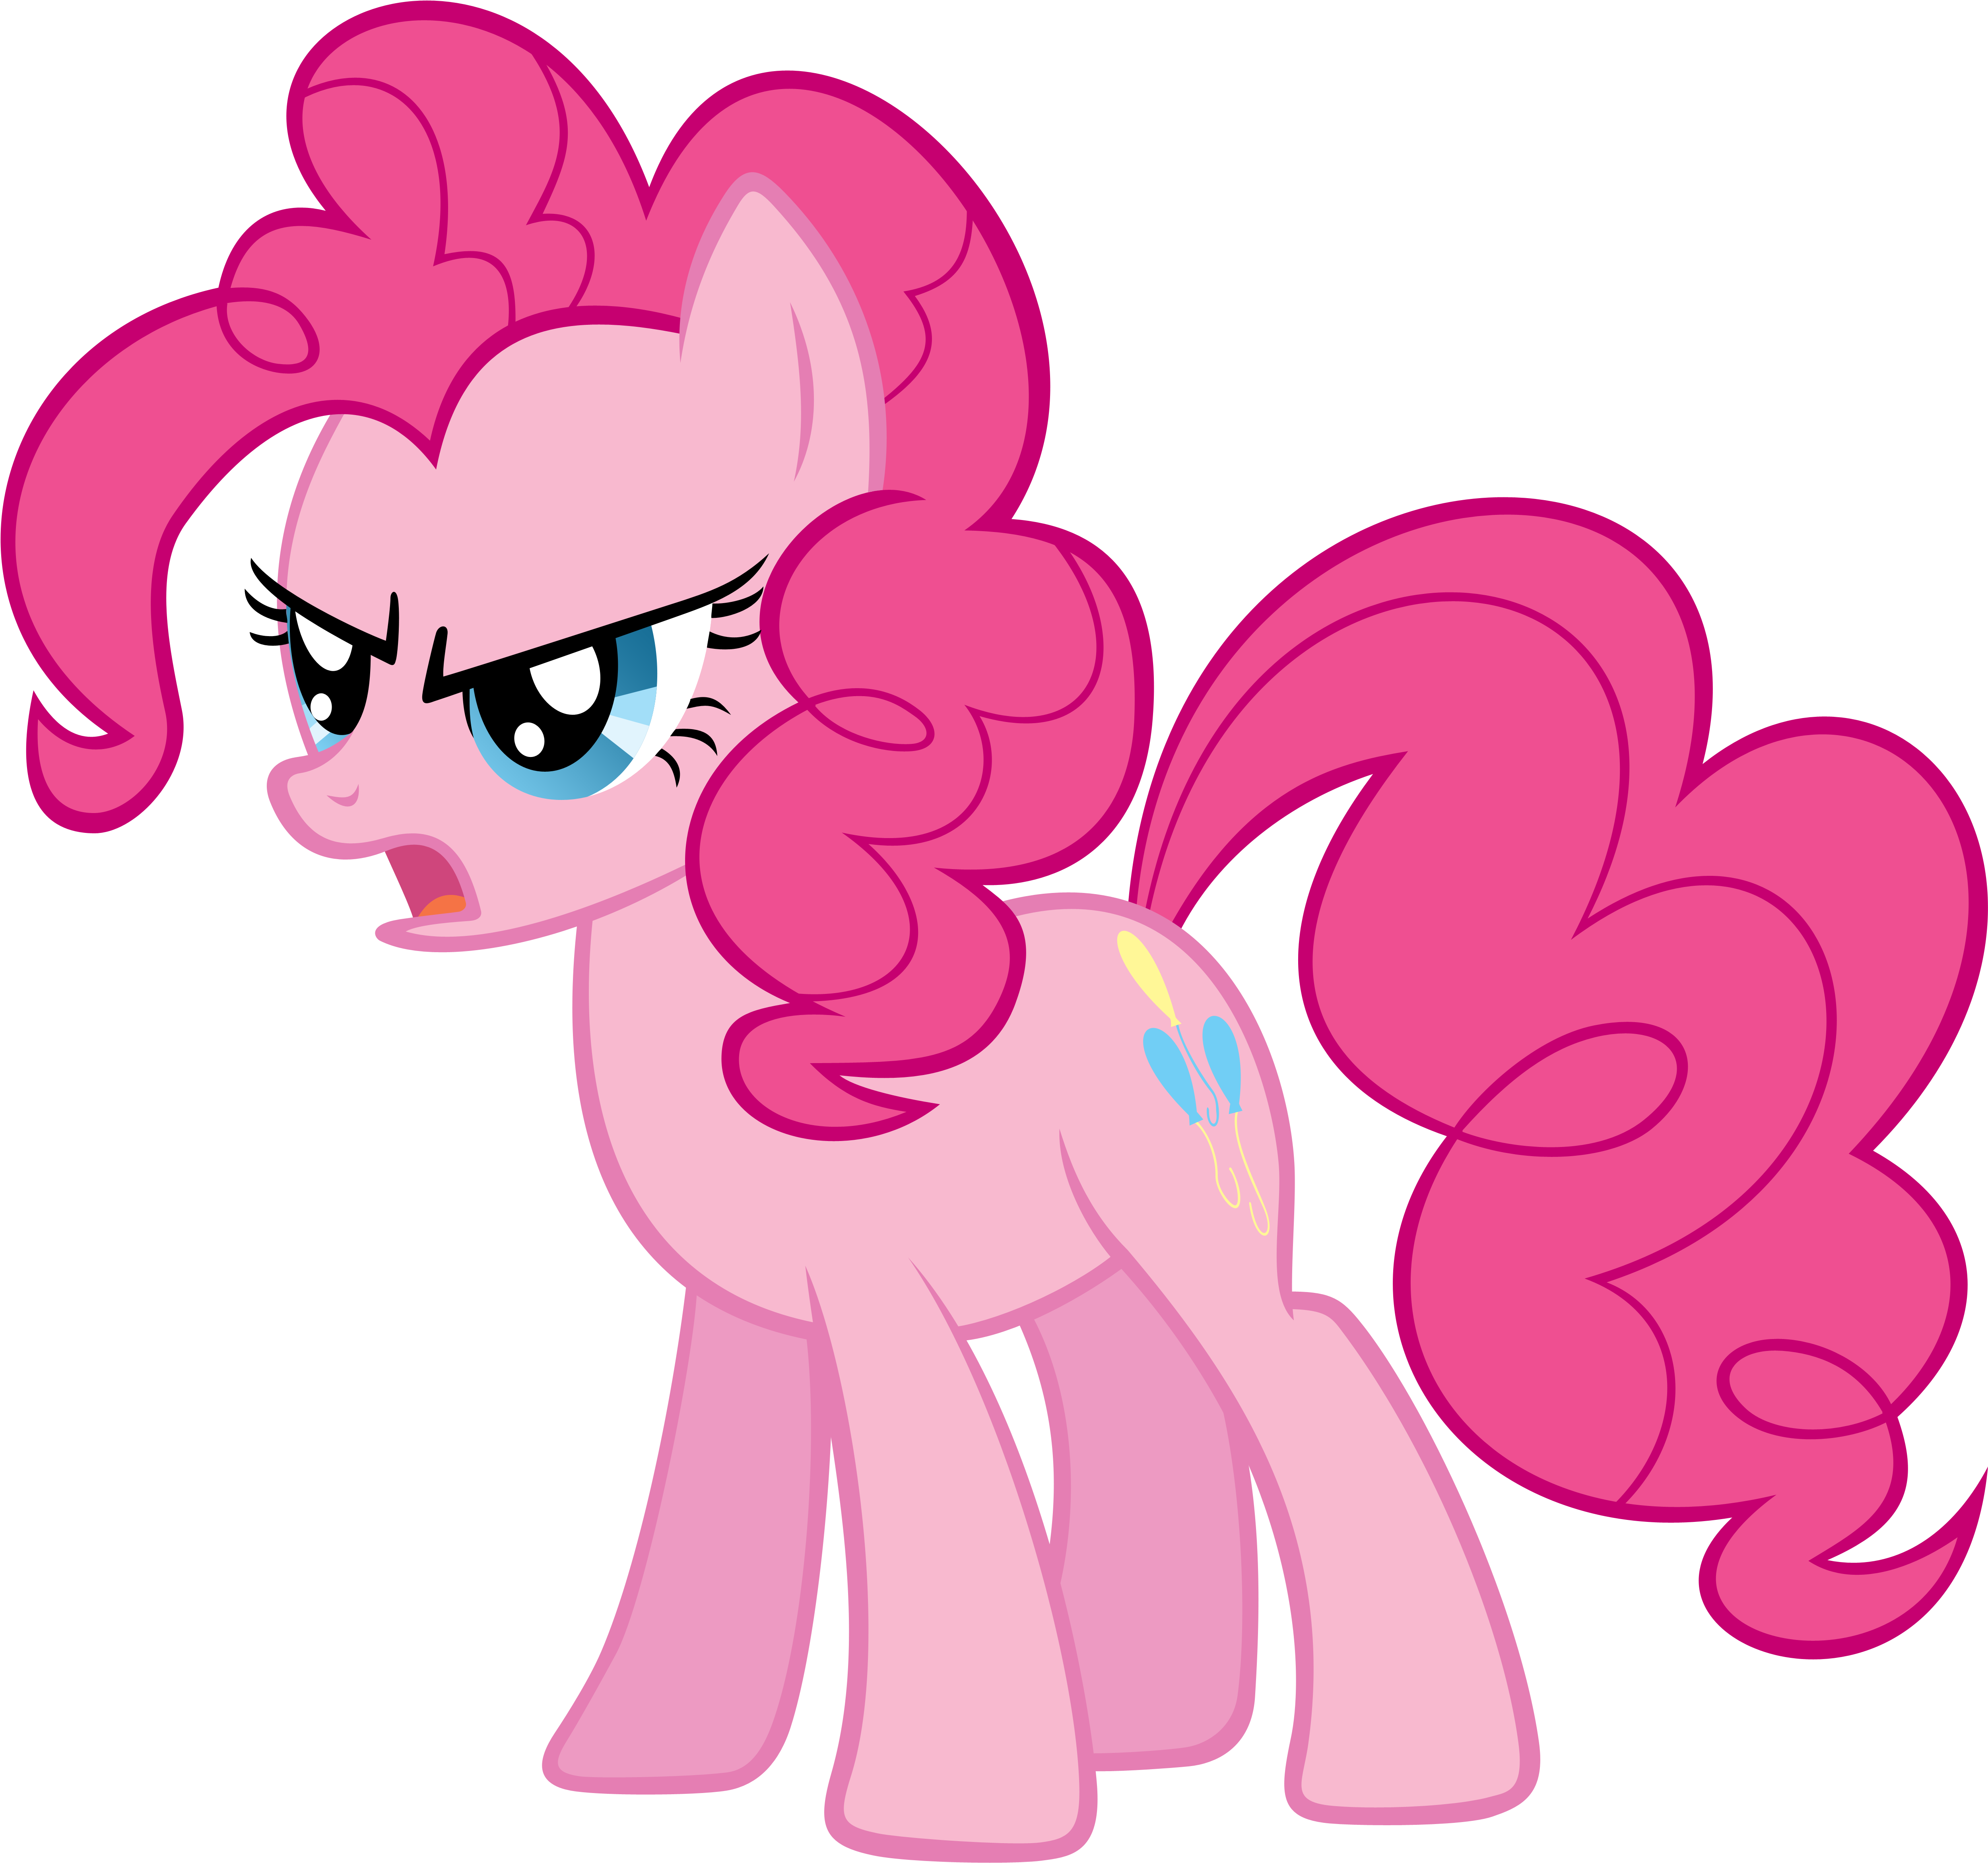 Pinkie Pie is Angry by piranhaplant1